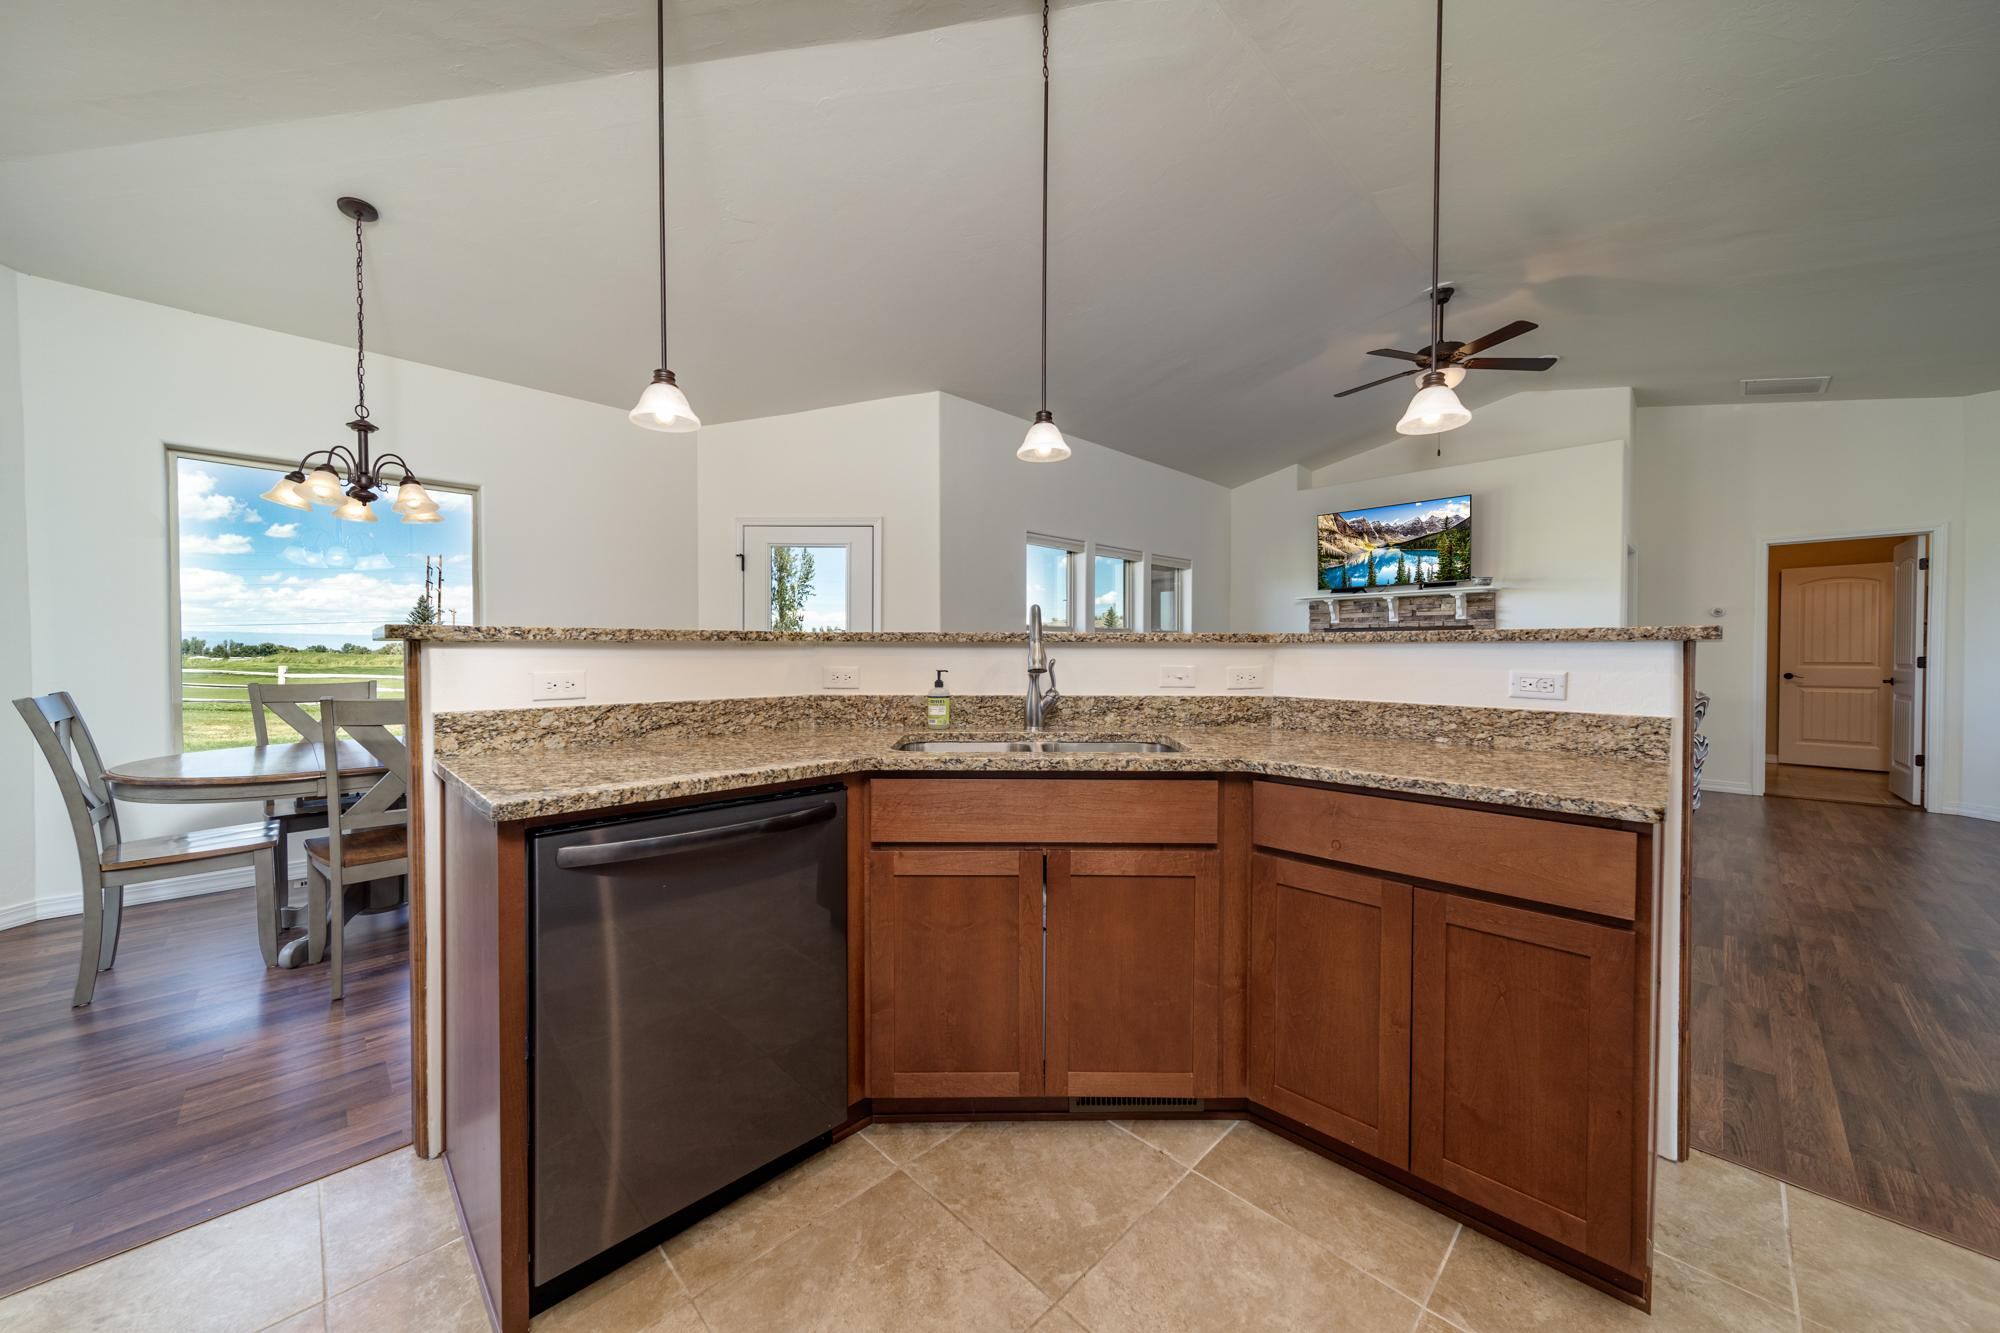 Kitchen with Island Sink - 597 Cobble Dr Montrose, CO - Atha Team MLS Colorado